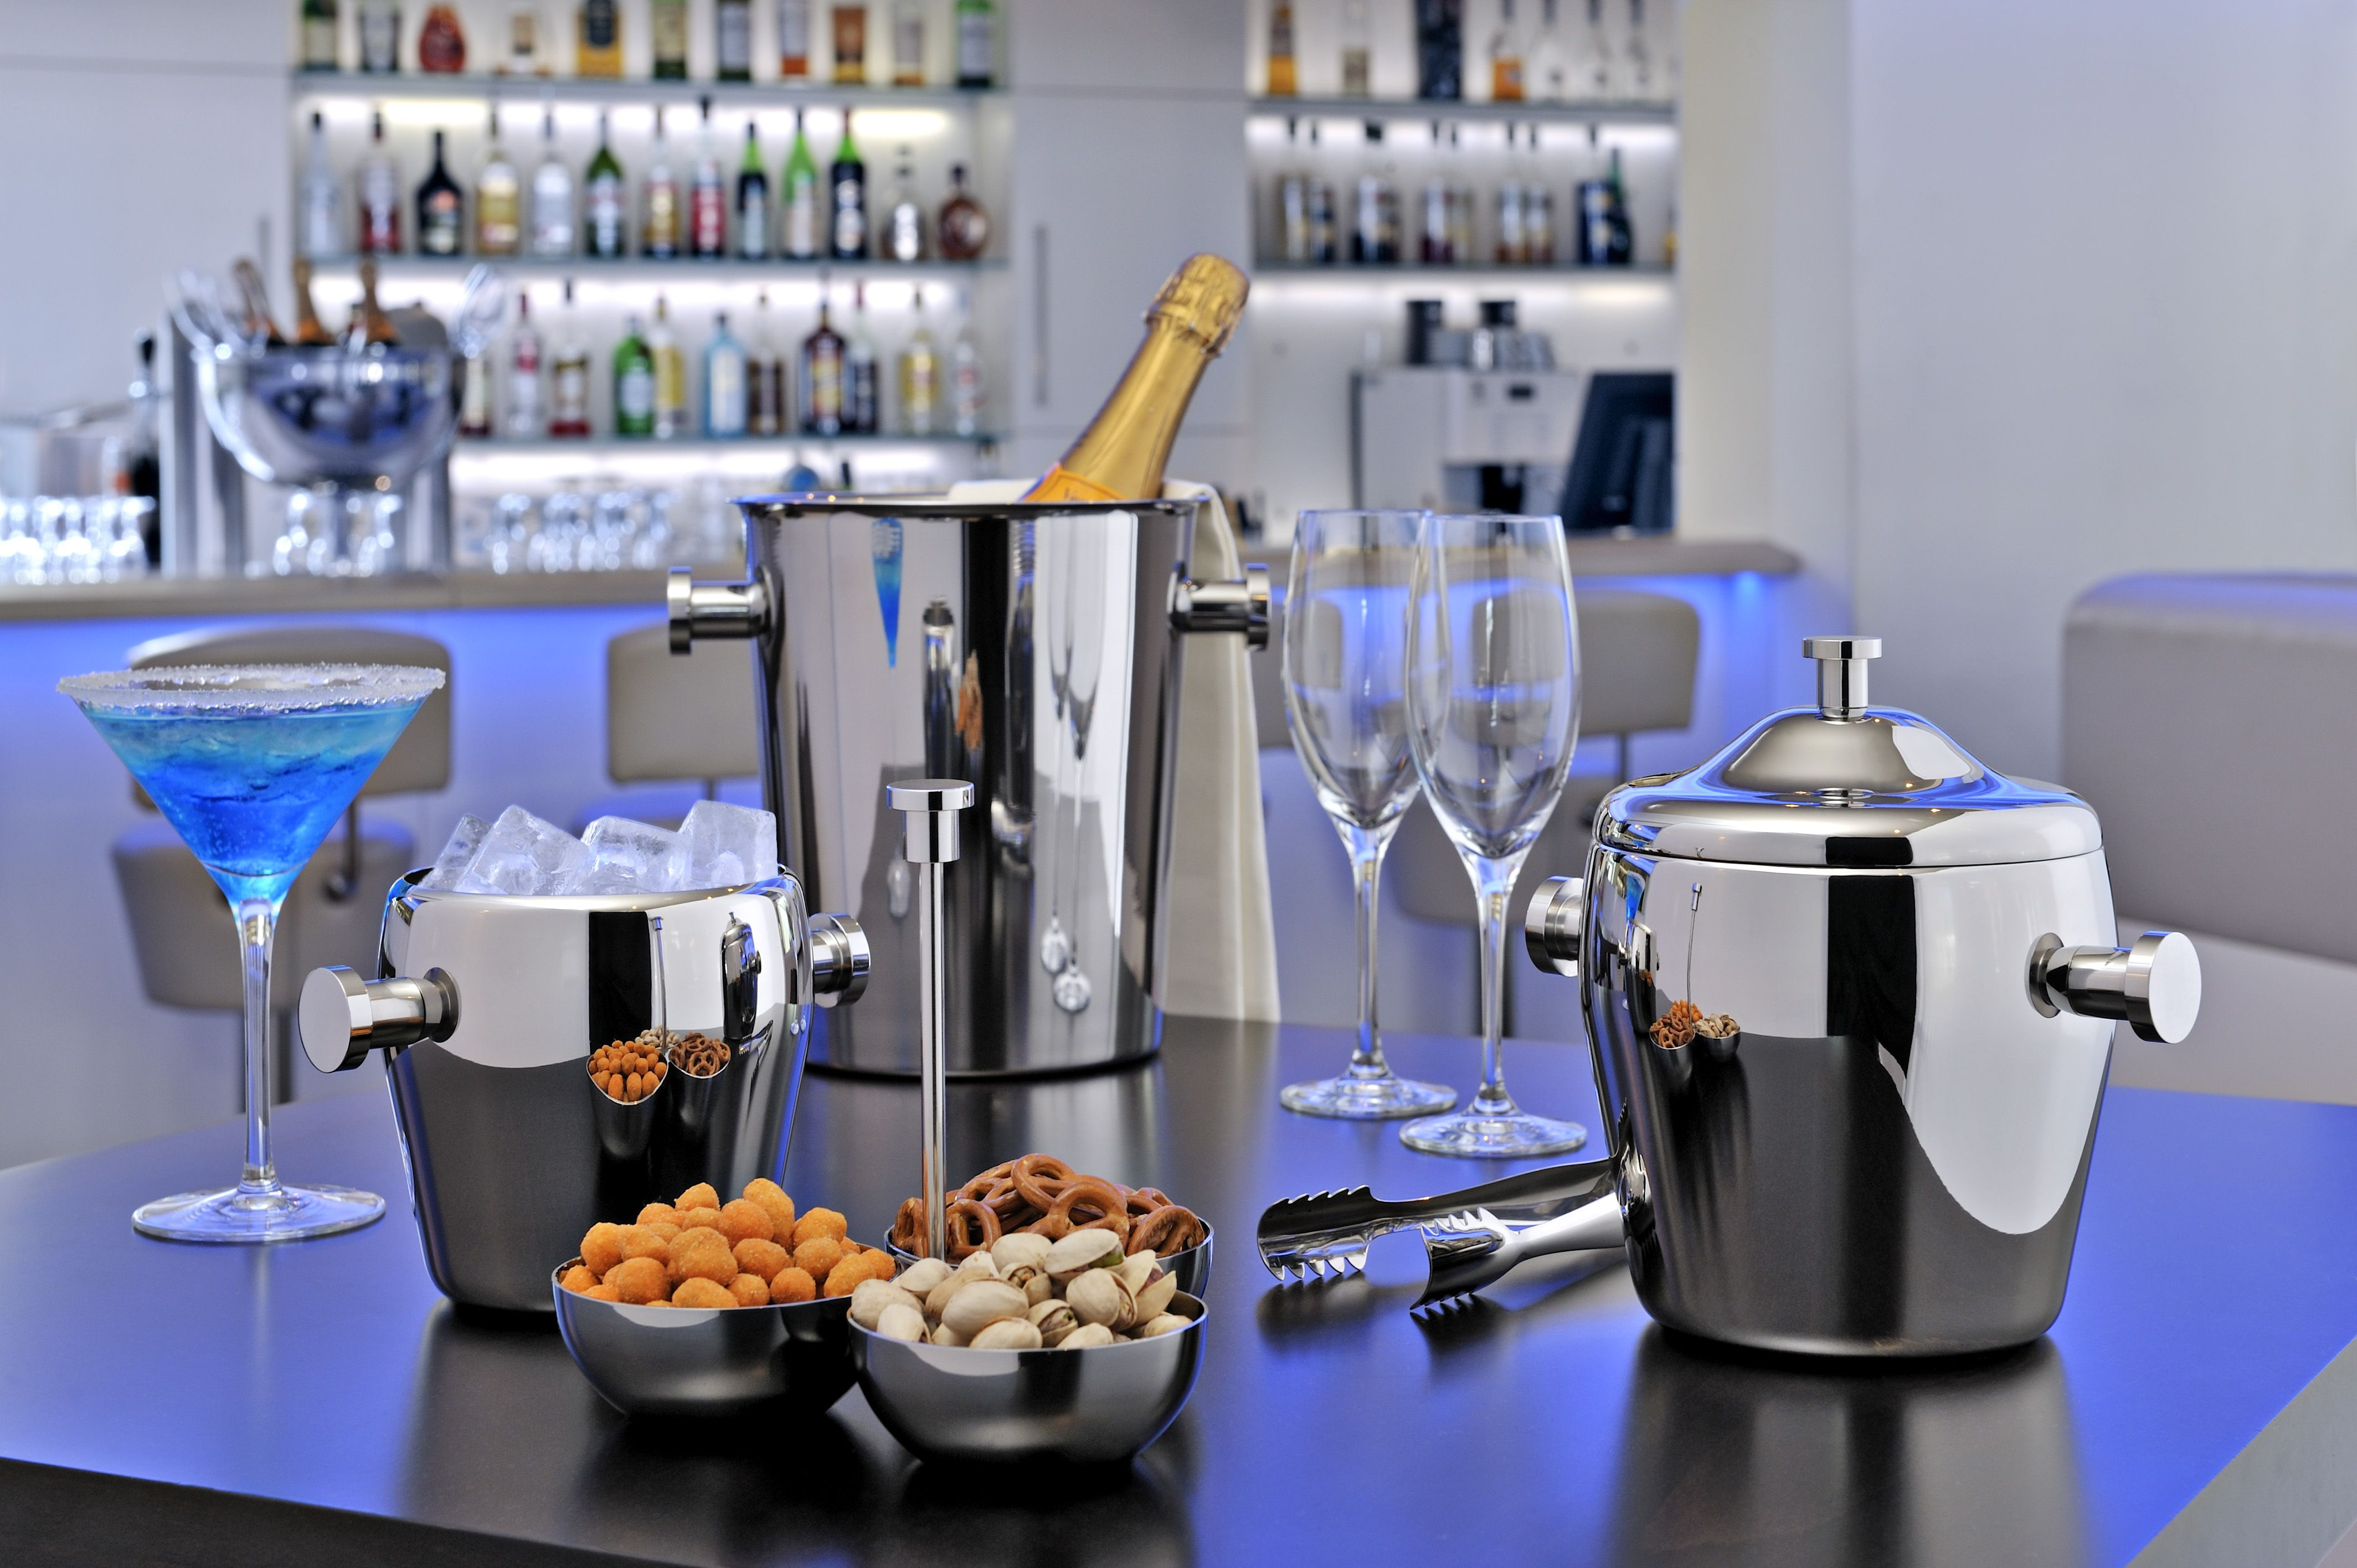 HEPP's bar utensils offer gourmets extraordinary enjoyment in a stylish ambience. Function, quality and incomparable aesthetics characterise these valuable HEPP products all round the globe.